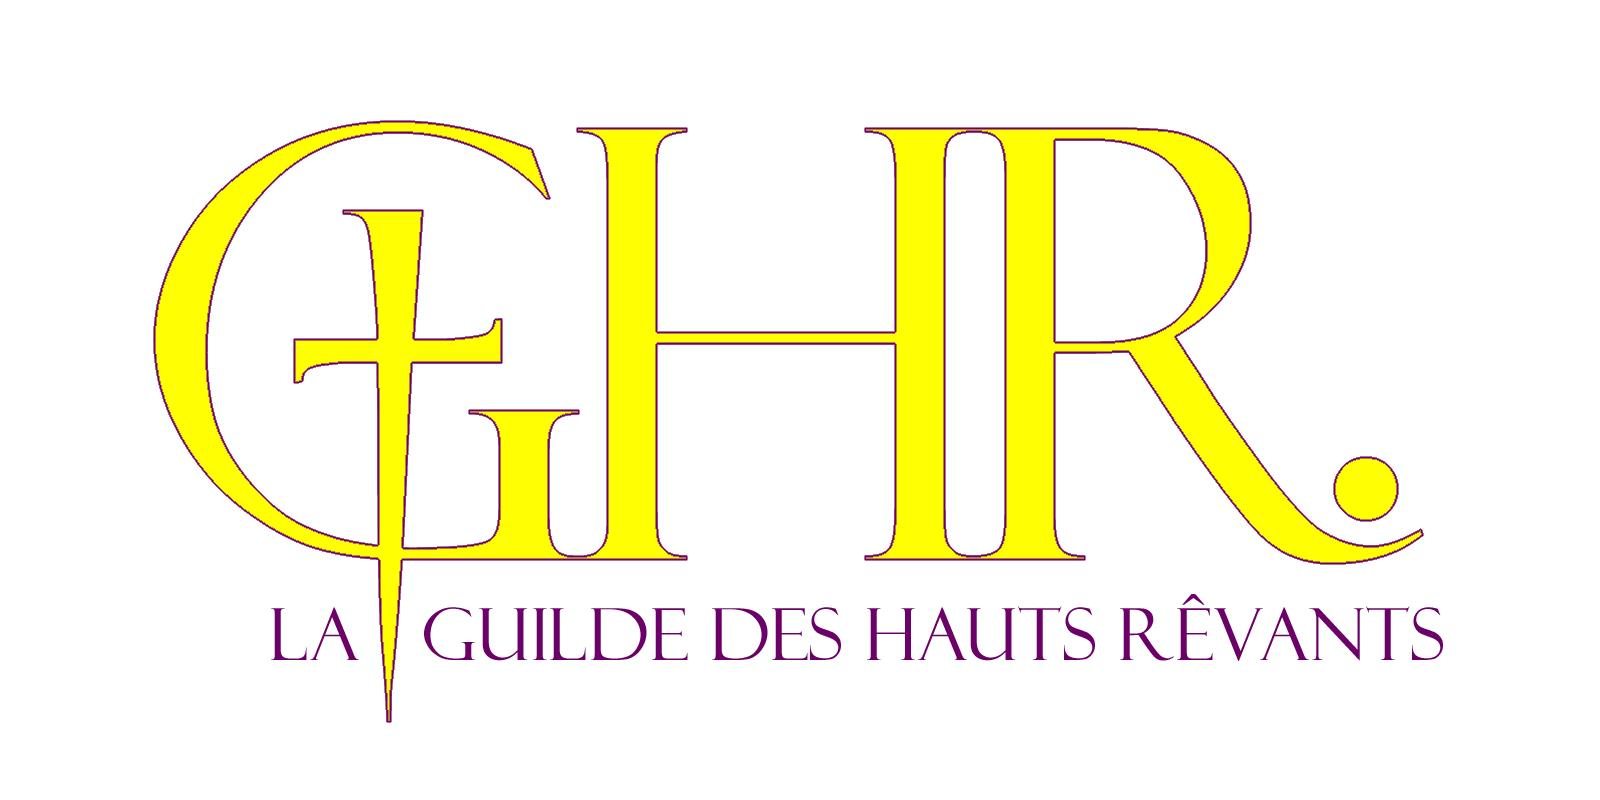 La guilde des hauts revants